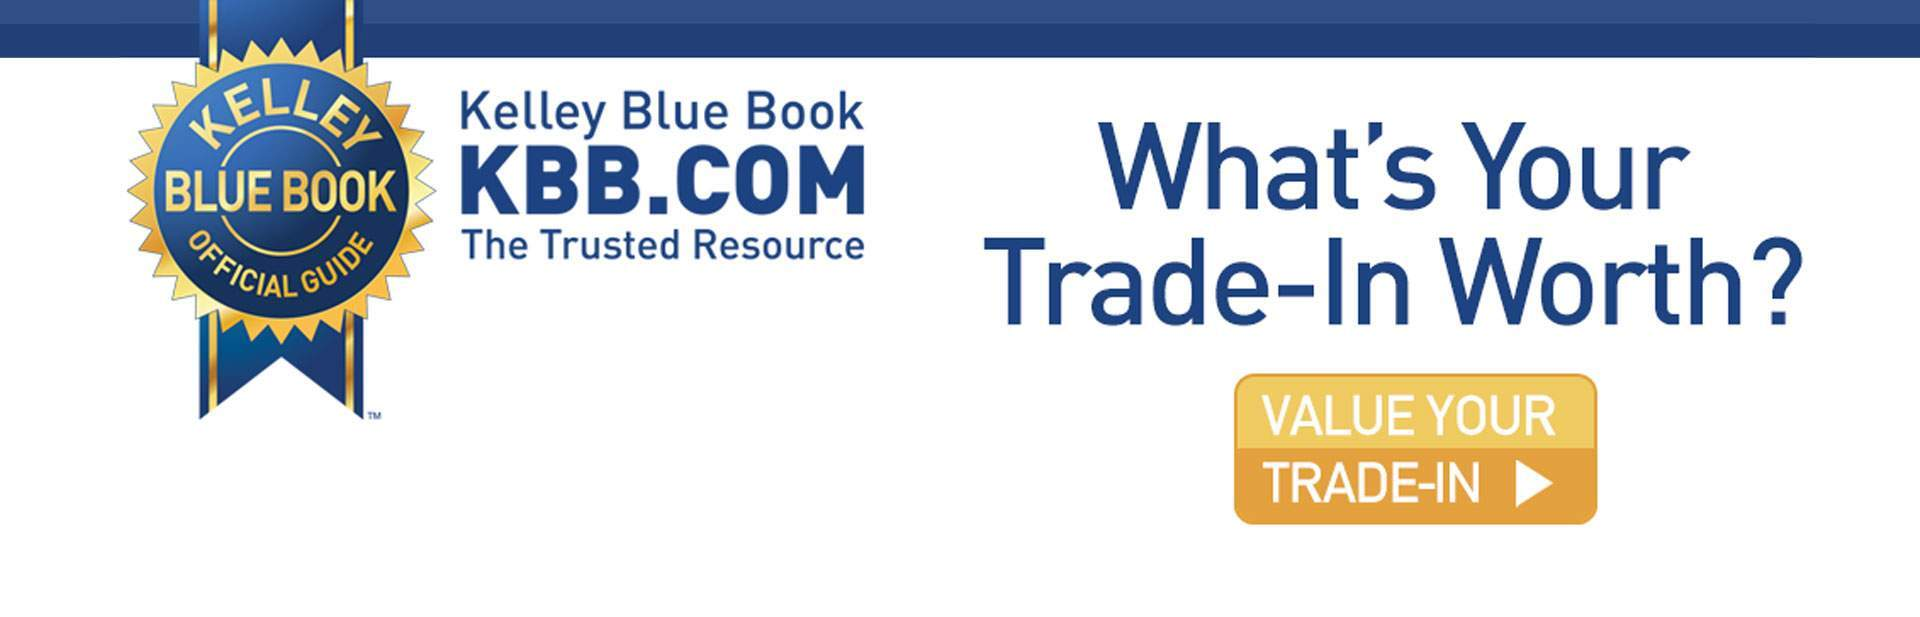 Kelly Blue Book Trade In Value >> Value Your Trade